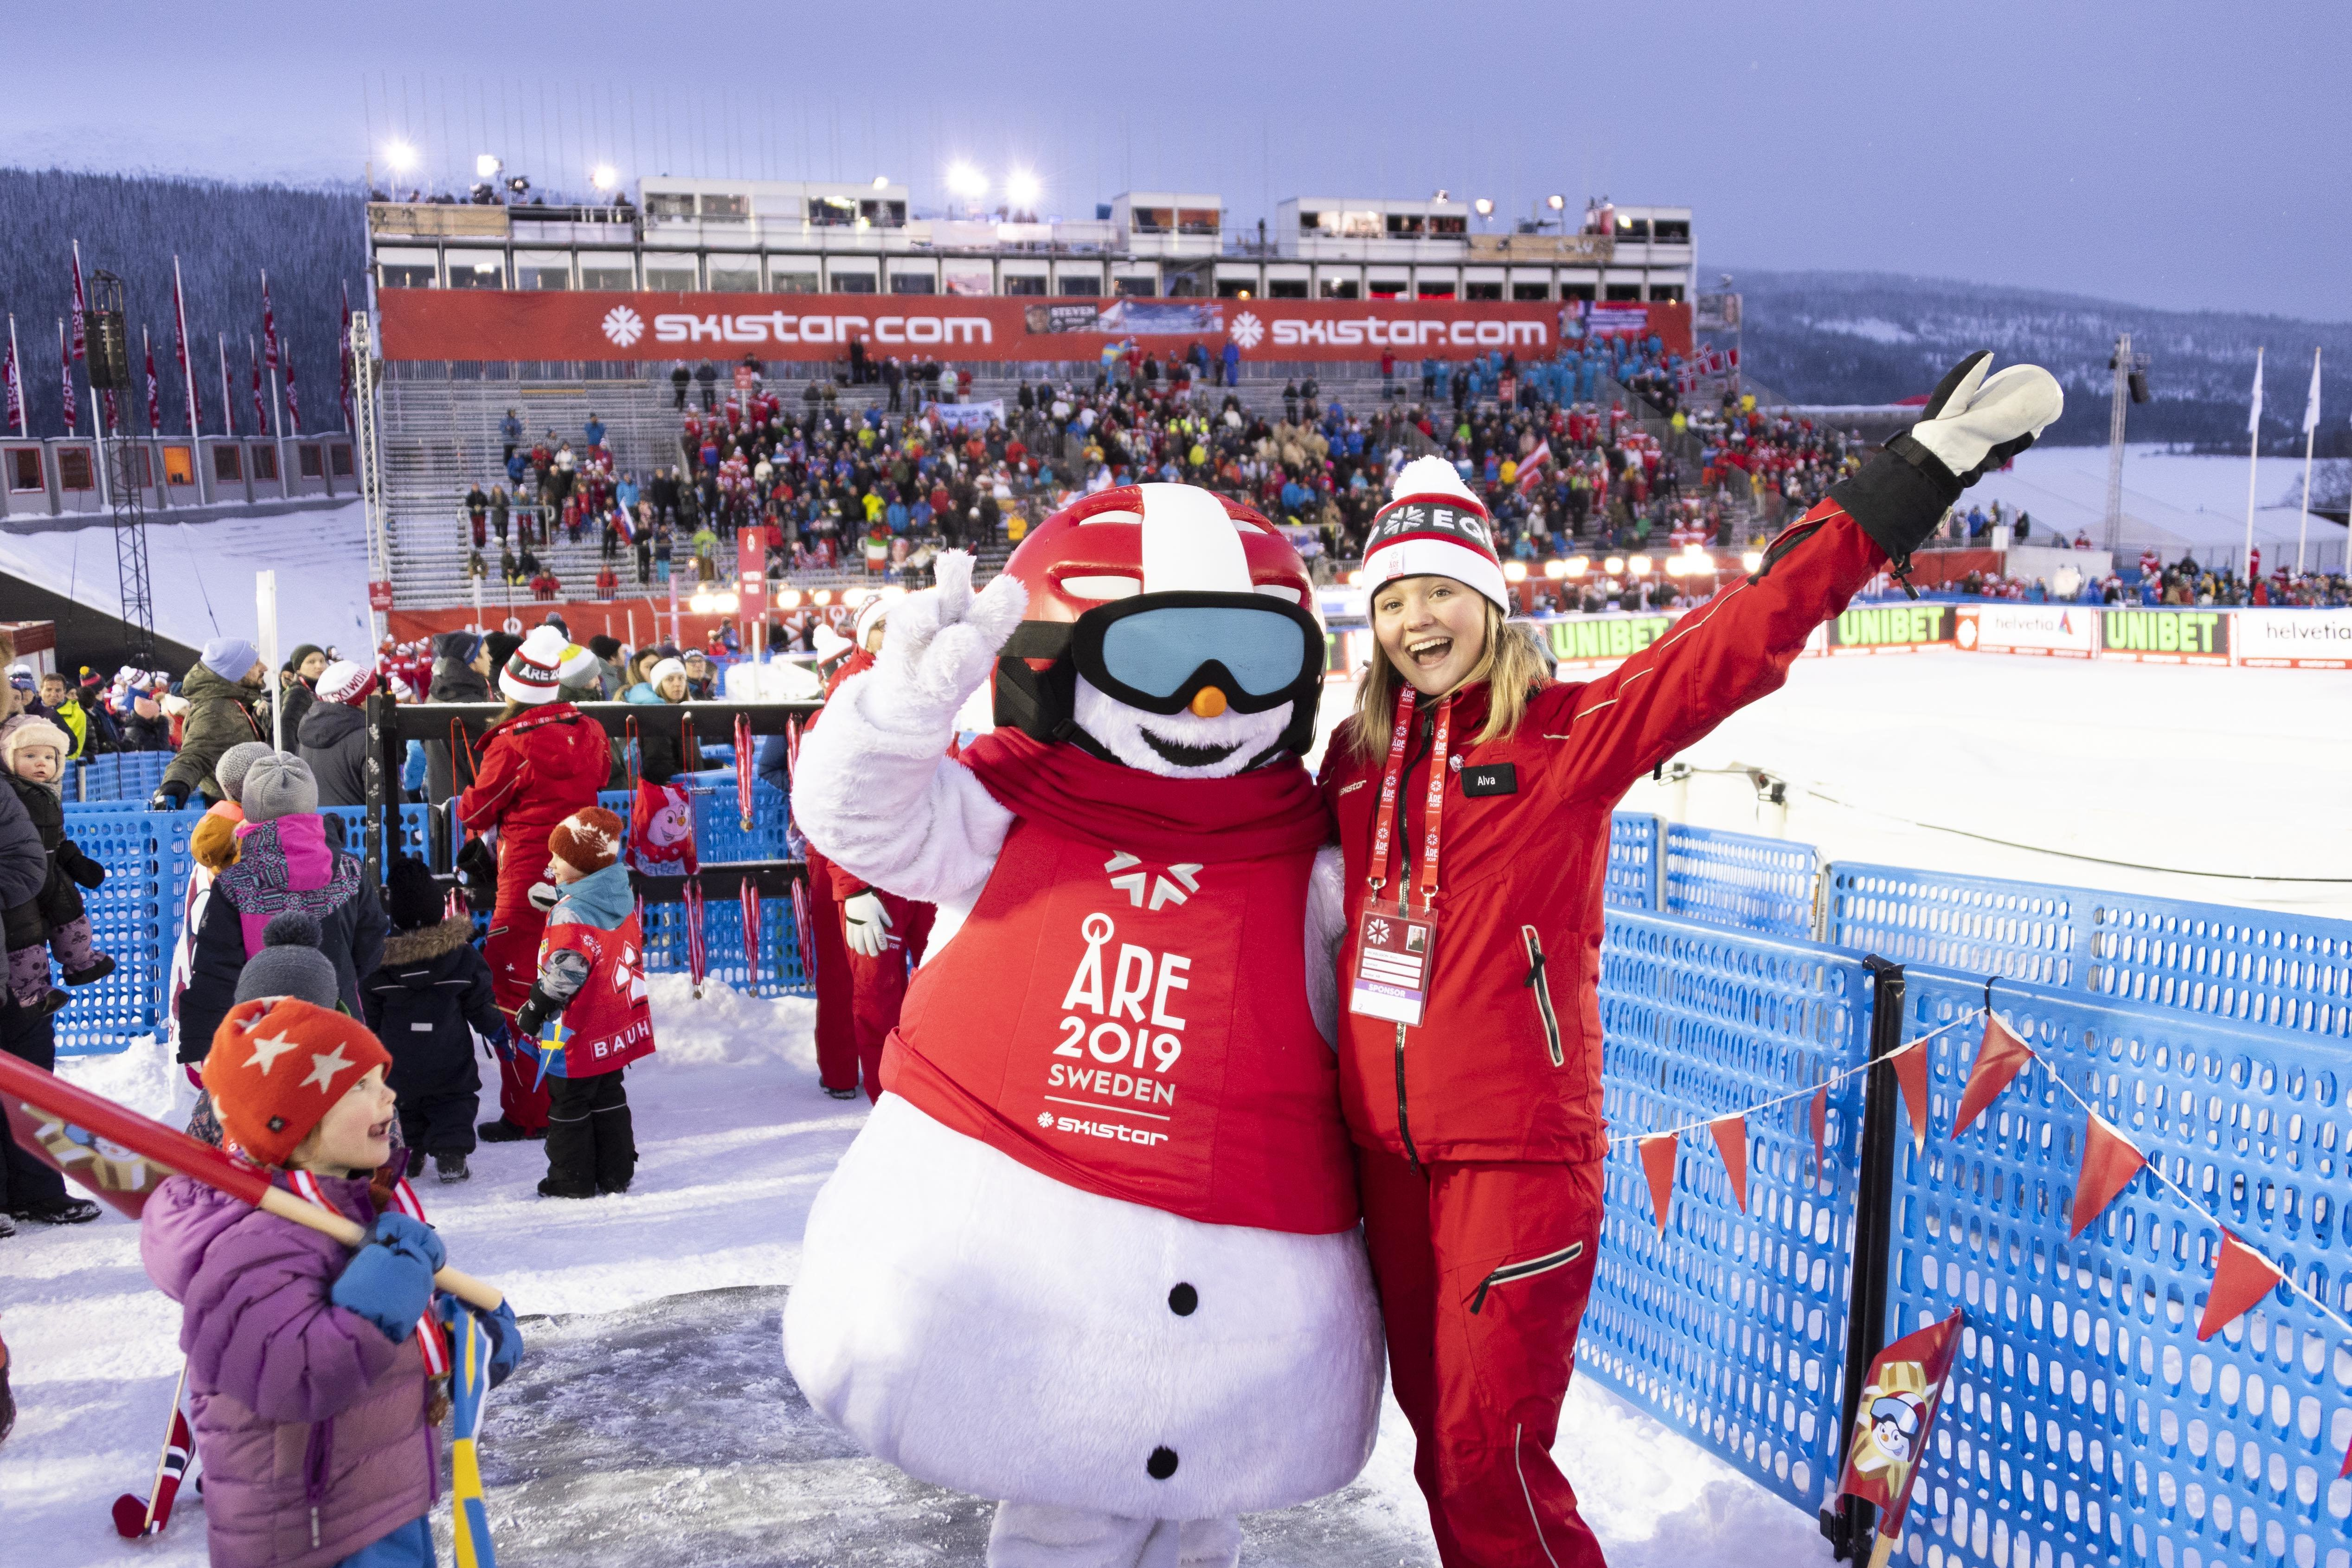 Are takes centre stage for the FIS Alpine Skiing Championships - Skistar